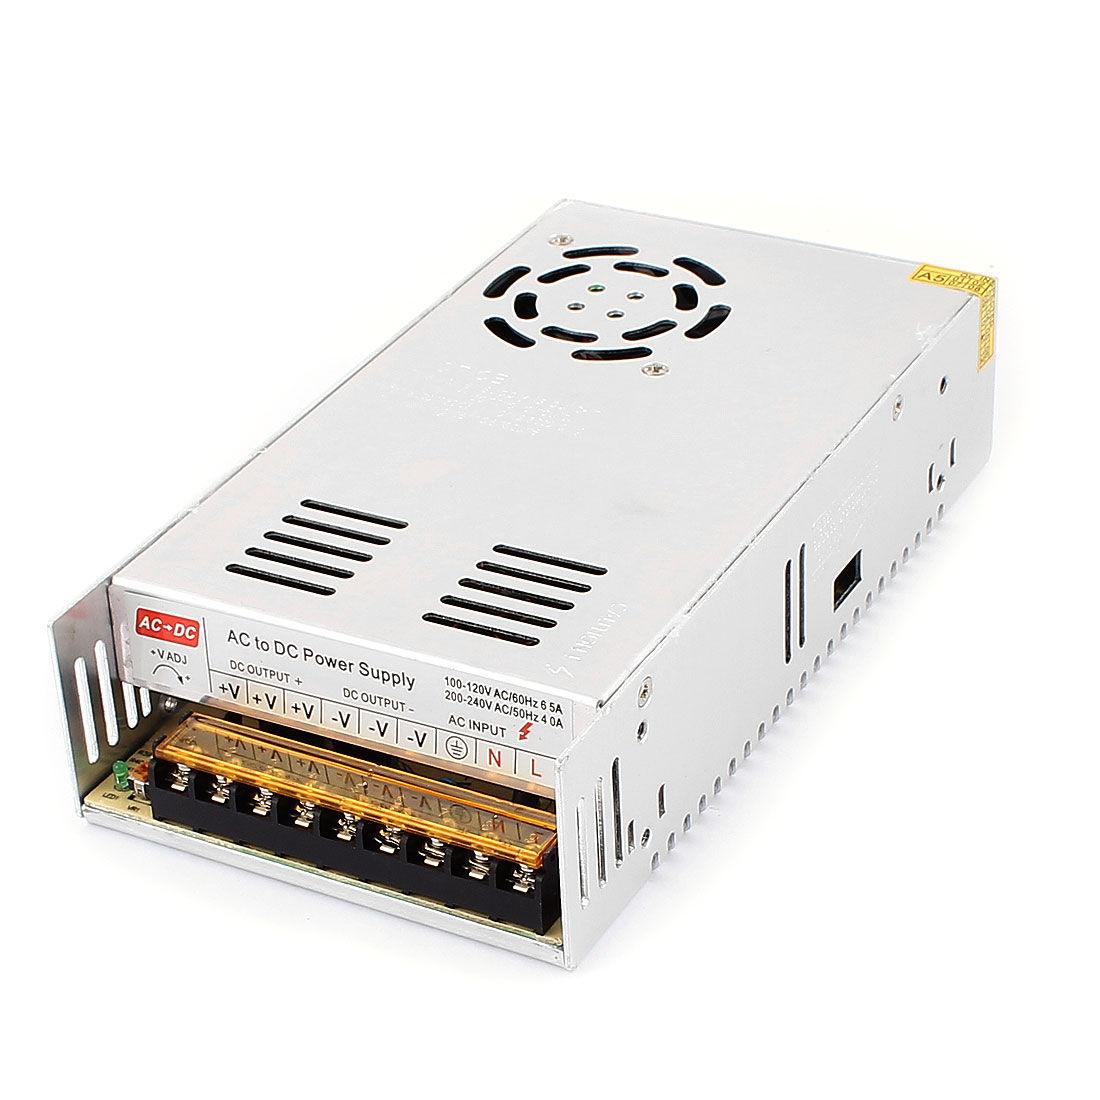 DMiotech DC 12V 30A 360W 9 Terminals Power Supply Switching Converter for LED Strip Light